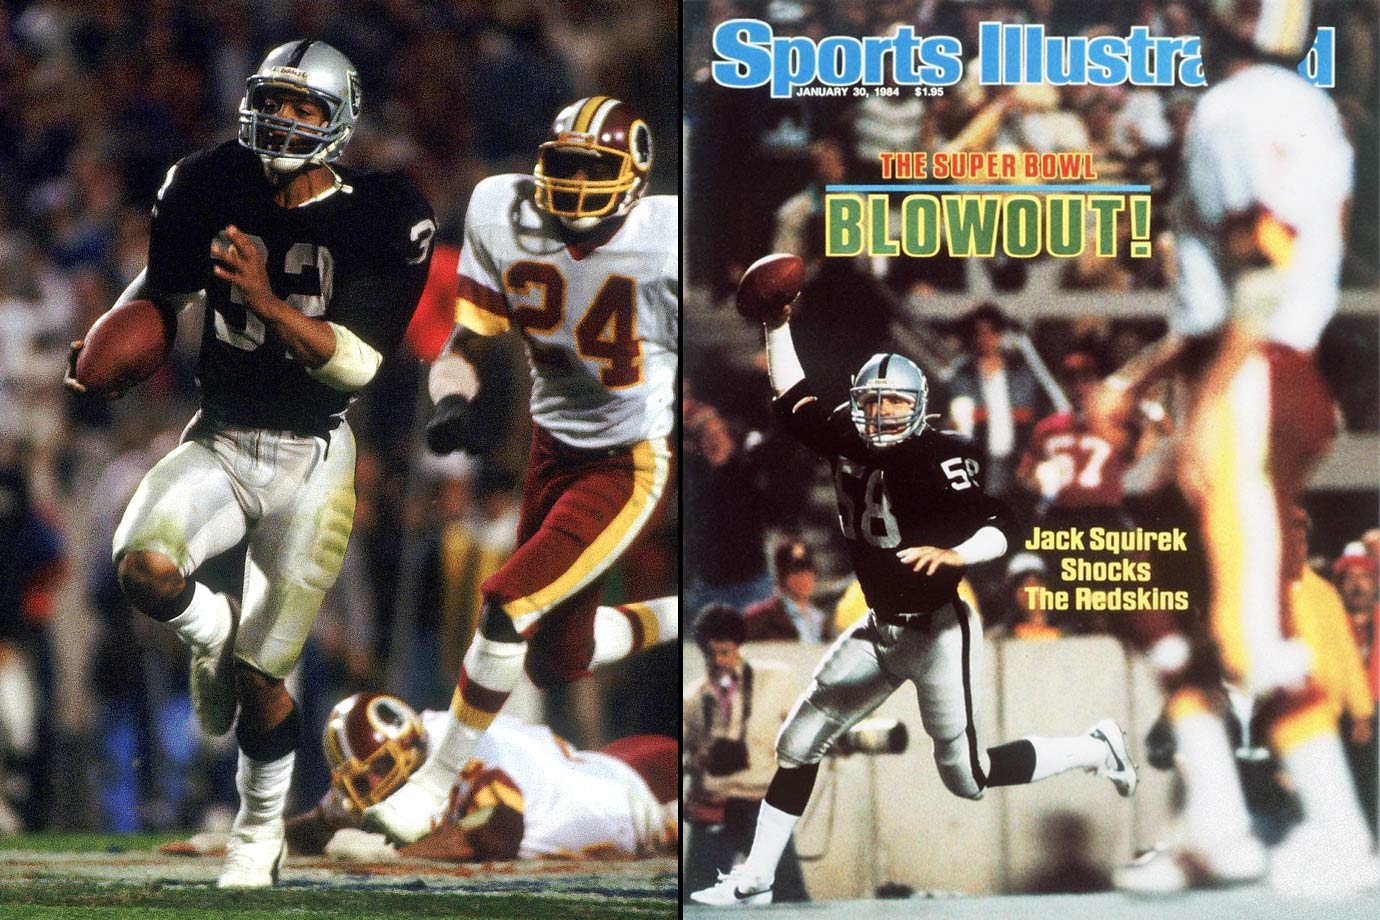 The Redskins were heavily favored after going 14-2, but Raiders running back Marcus Allen made the oddsmakers look dumb while rushing for a Super Bowl-record 191 yards on 20 carries. It was the most lopsided score in Super Bowl history at the time.